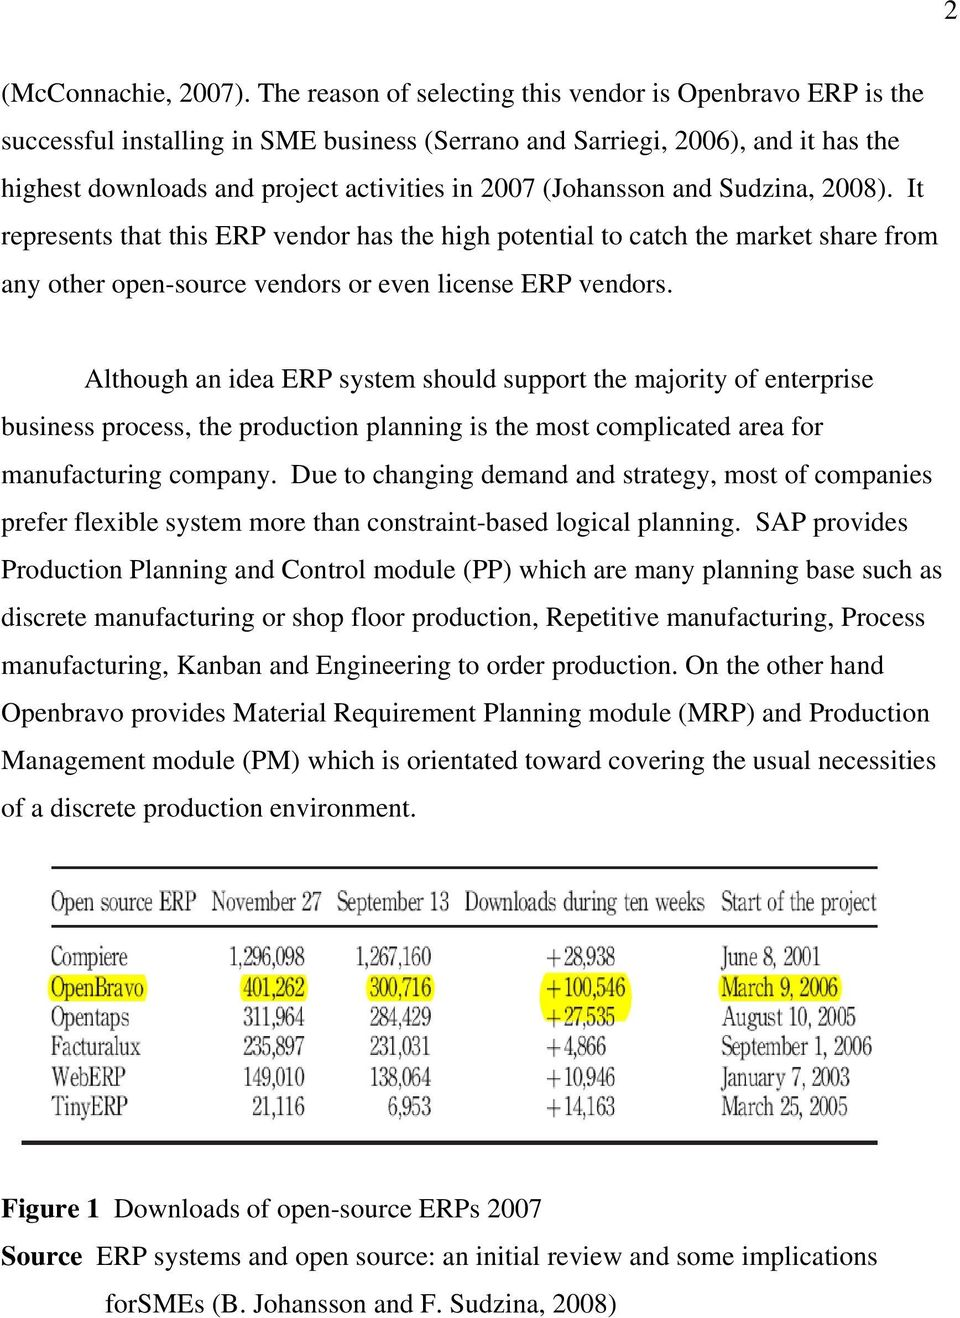 (Johansson and Sudzina, 2008). It represents that this ERP vendor has the high potential to catch the market share from any other open-source vendors or even license ERP vendors.